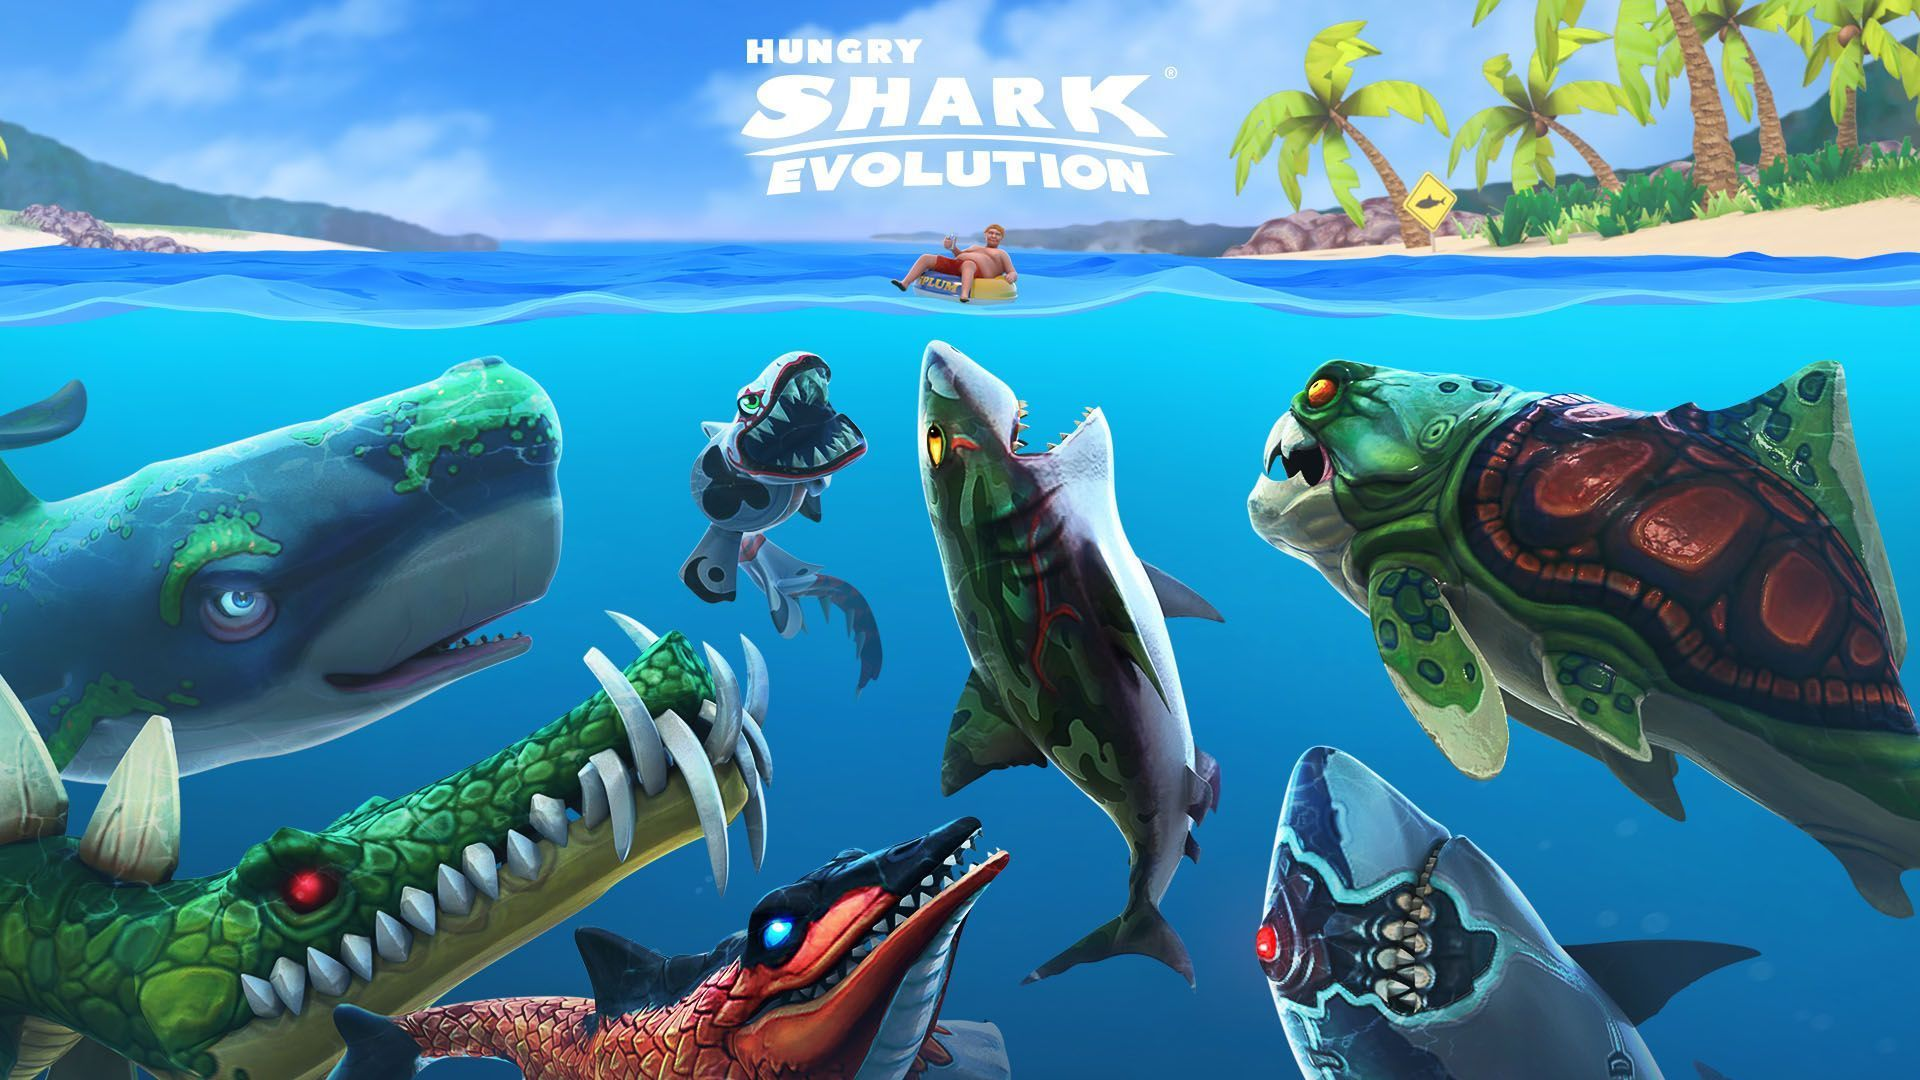 Hungry Shark Wallpapers   Top Free Hungry Shark Backgrounds ...